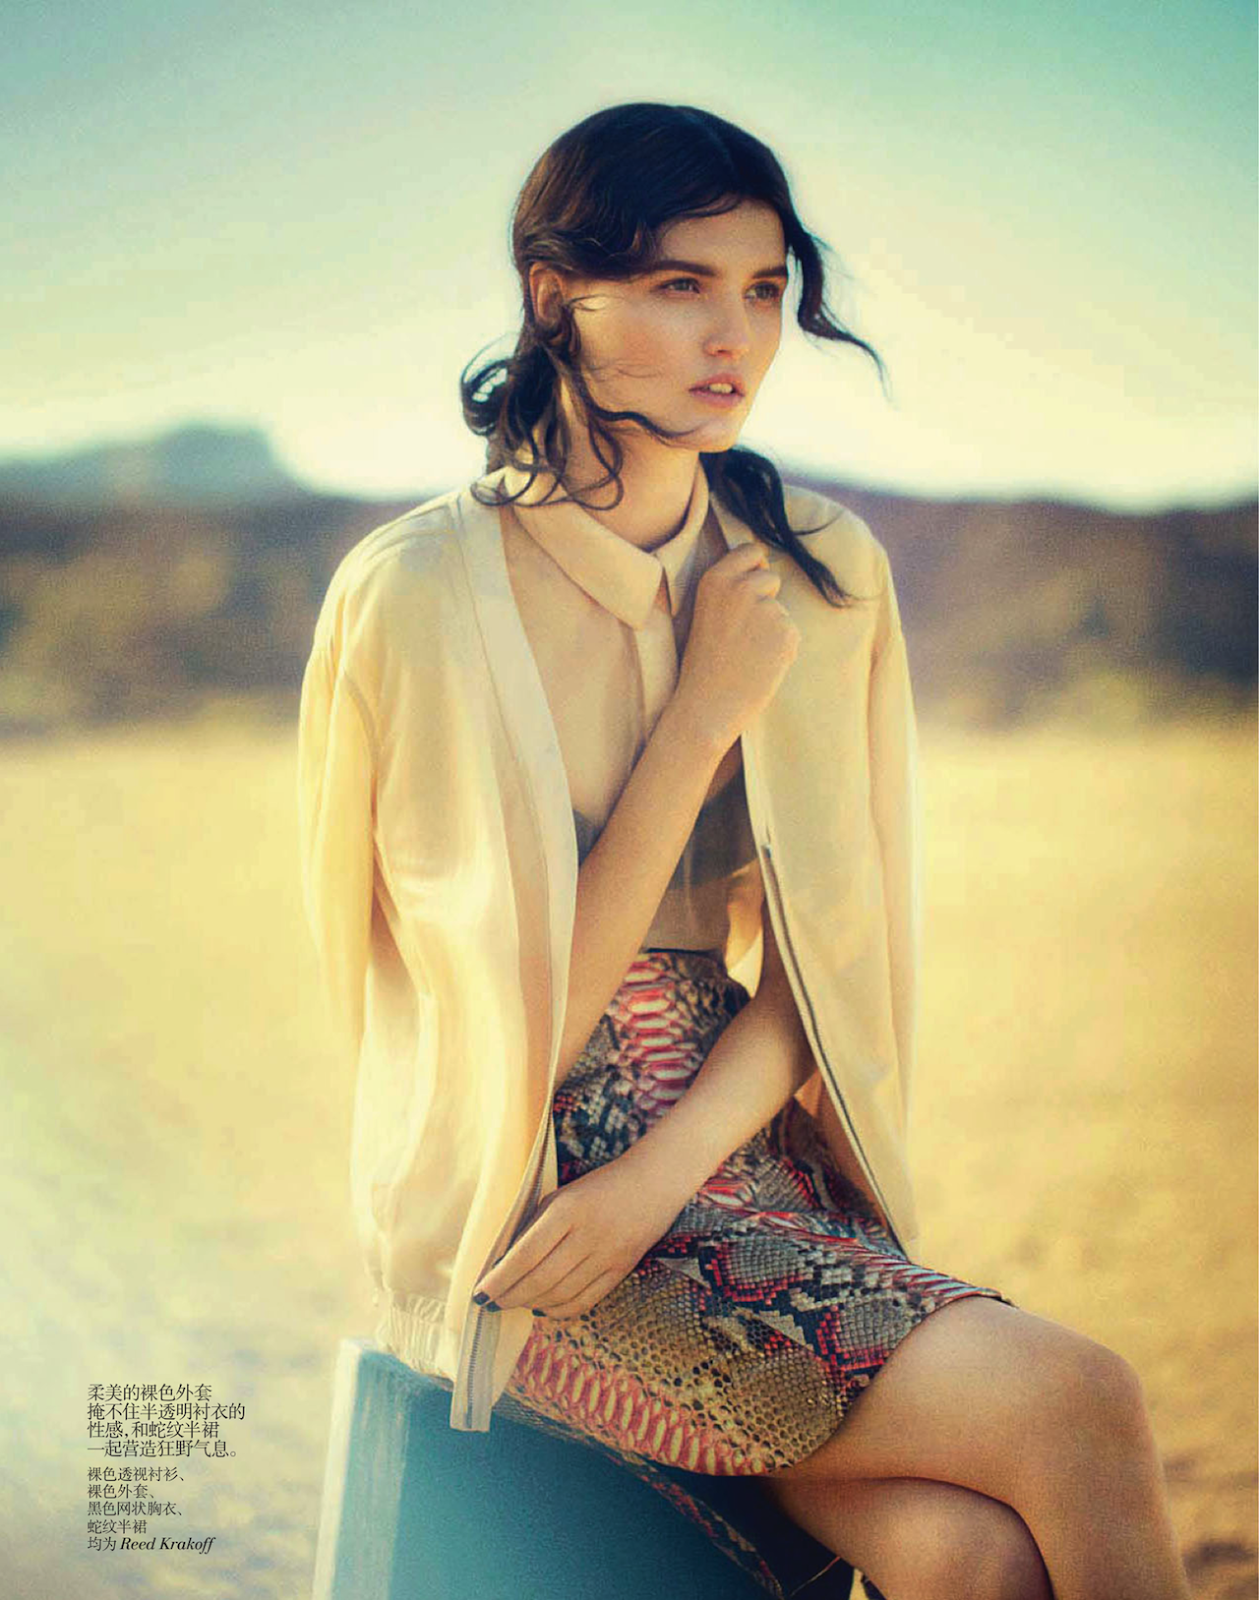 #KatlinAas #fashion #editorial by #BooGeorge for #VogueChina April 2013 #moda #photography #fotografía